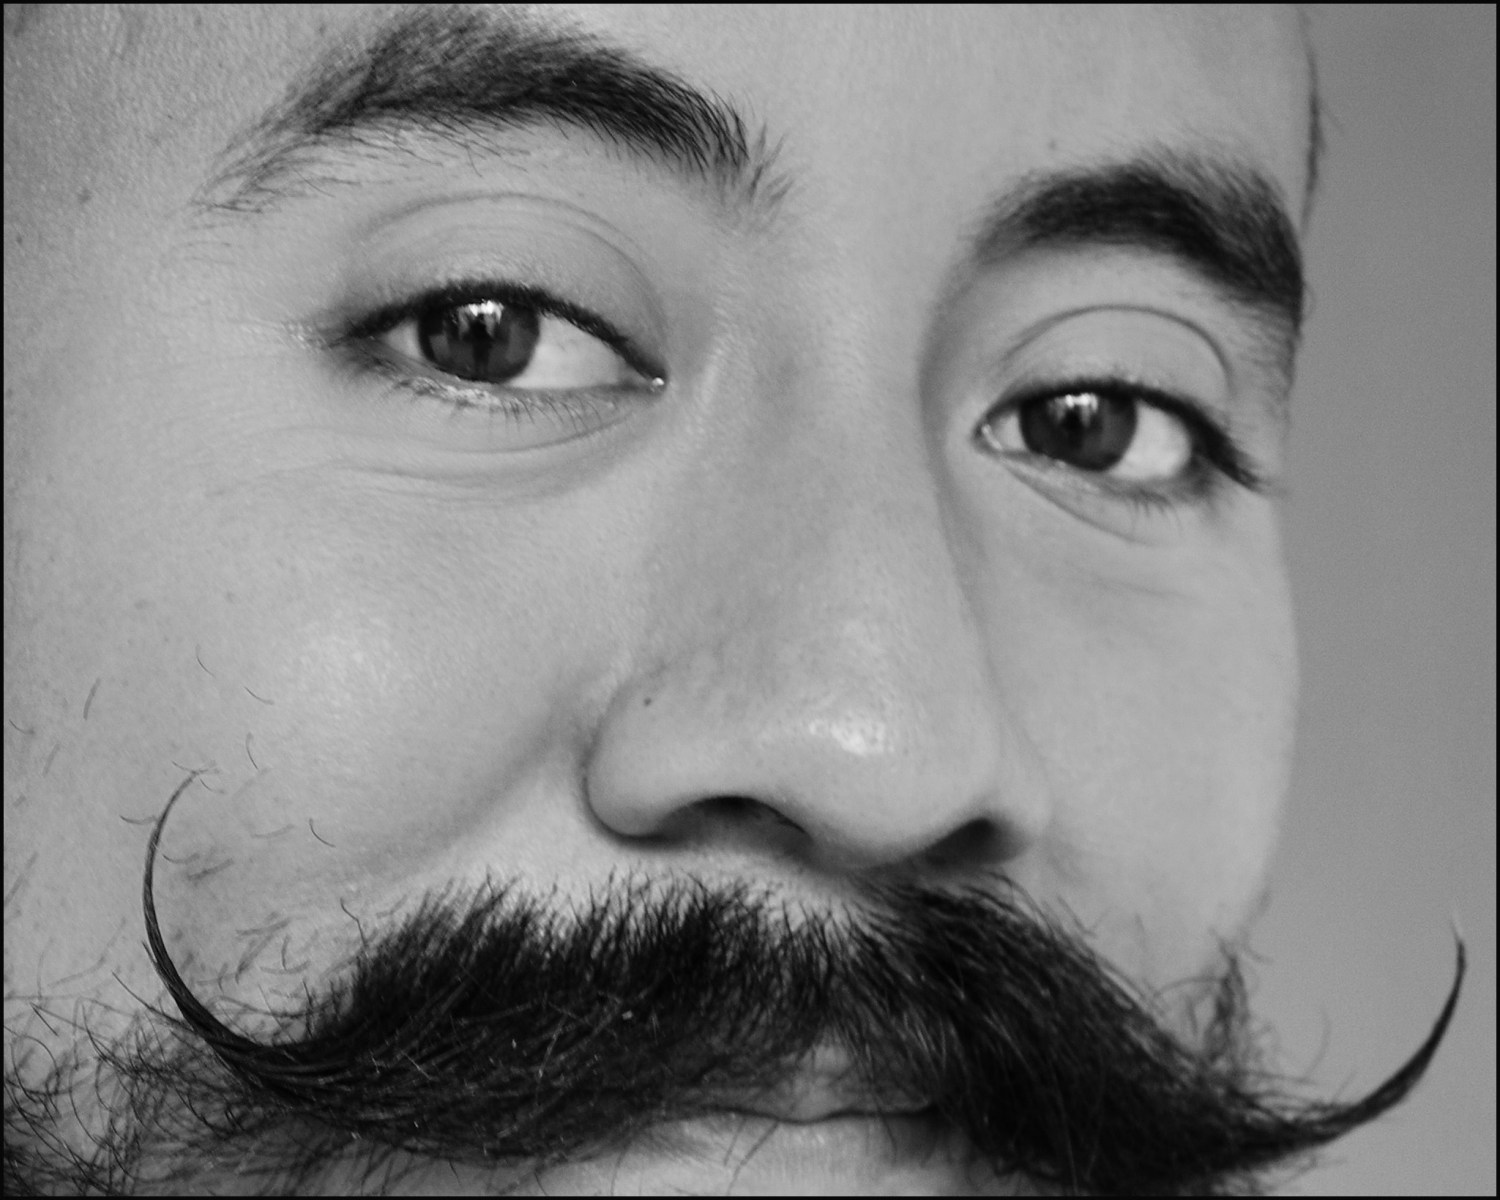 moustache-BWvery-very-tight-square-crop-FSCN1555